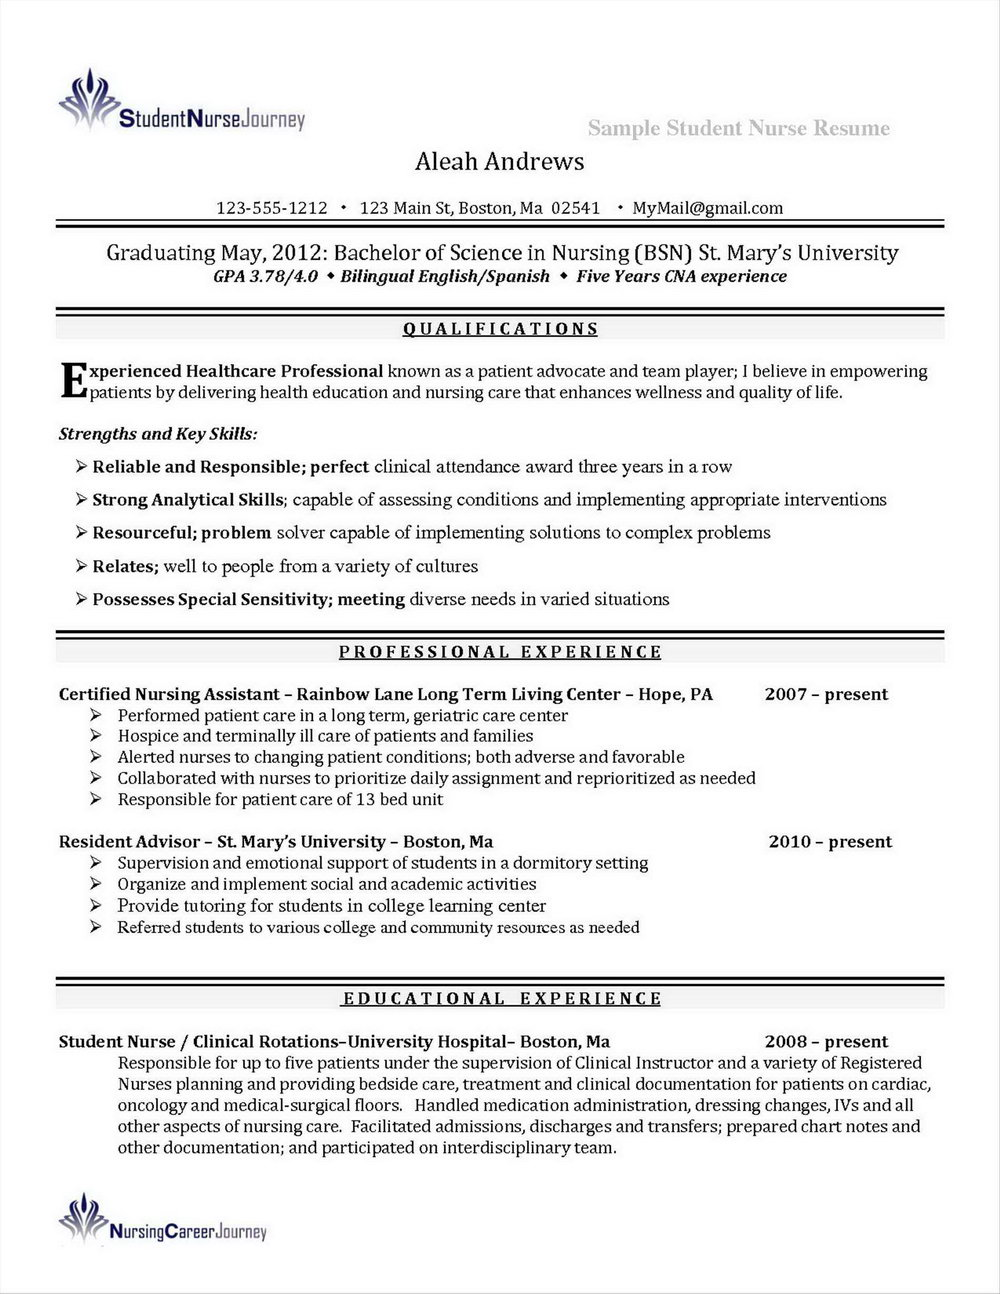 Registered Nurse Resume Sample Format Pdf